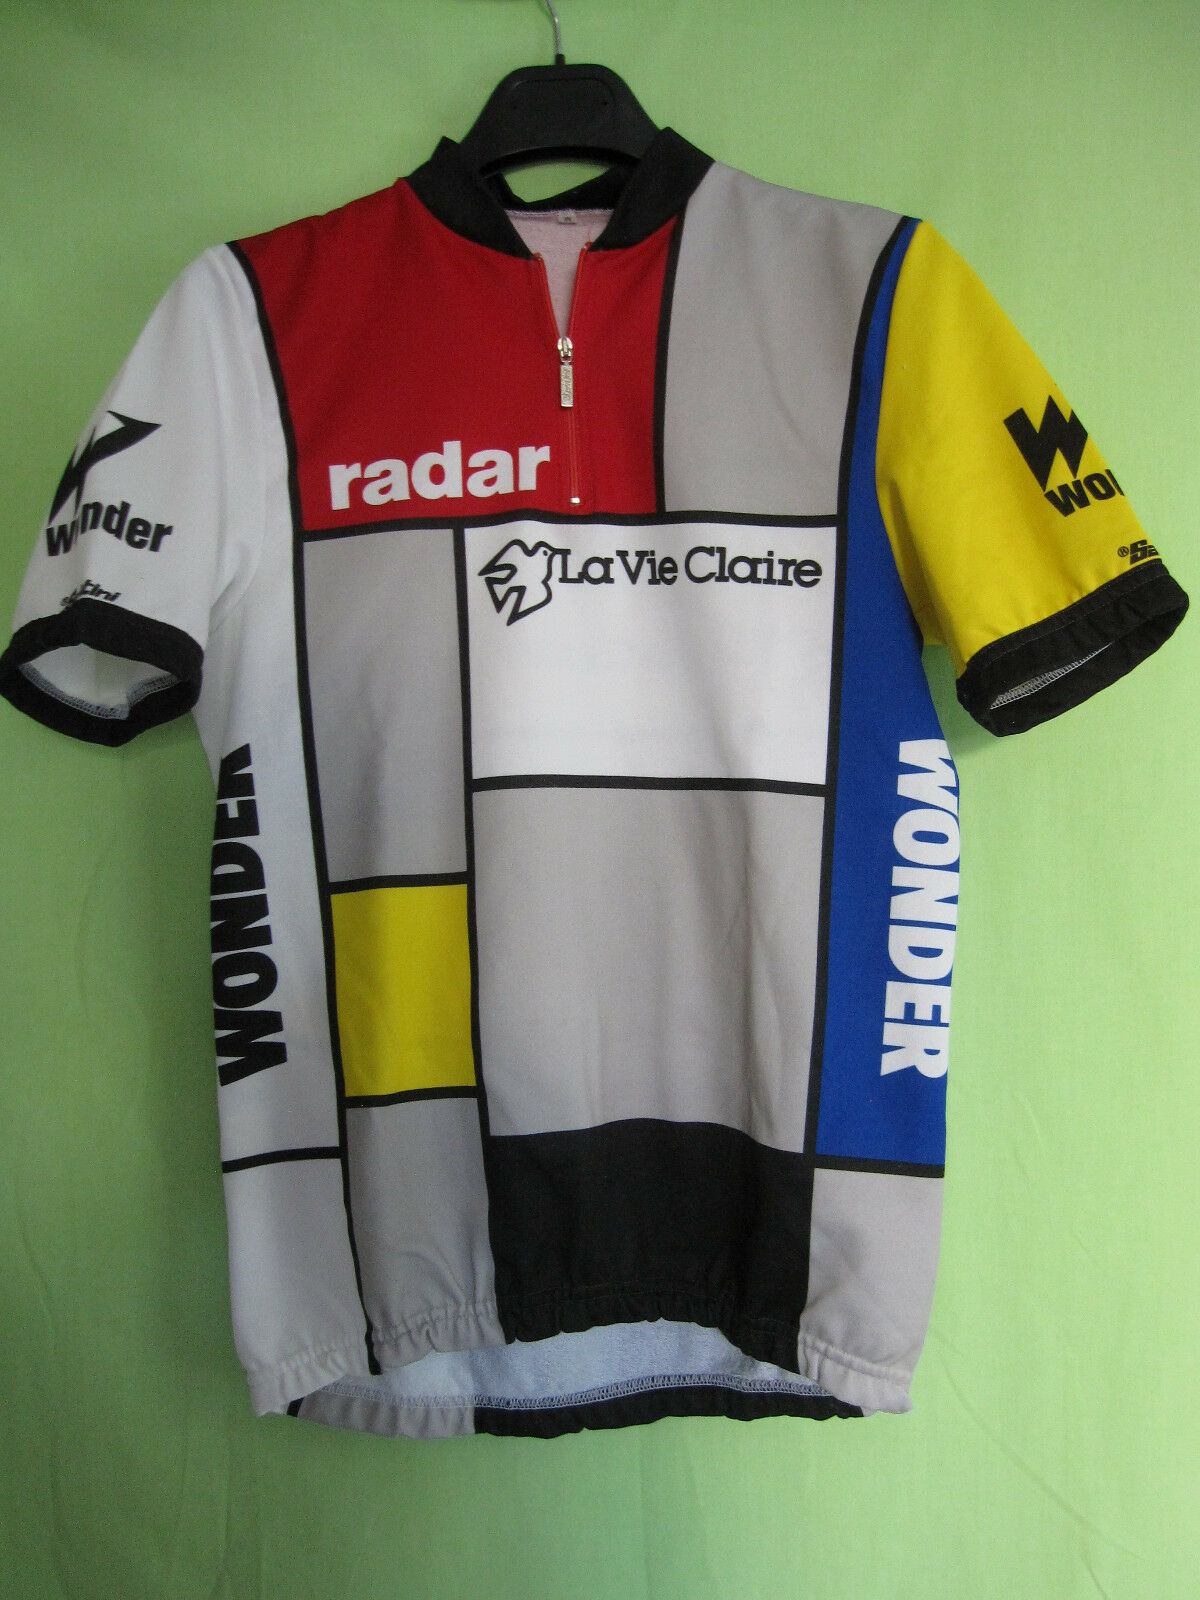 Maillot Cycliste Radar La Vie Claire  vintage jersey shirt 80'S HINAULT - M  free delivery and returns